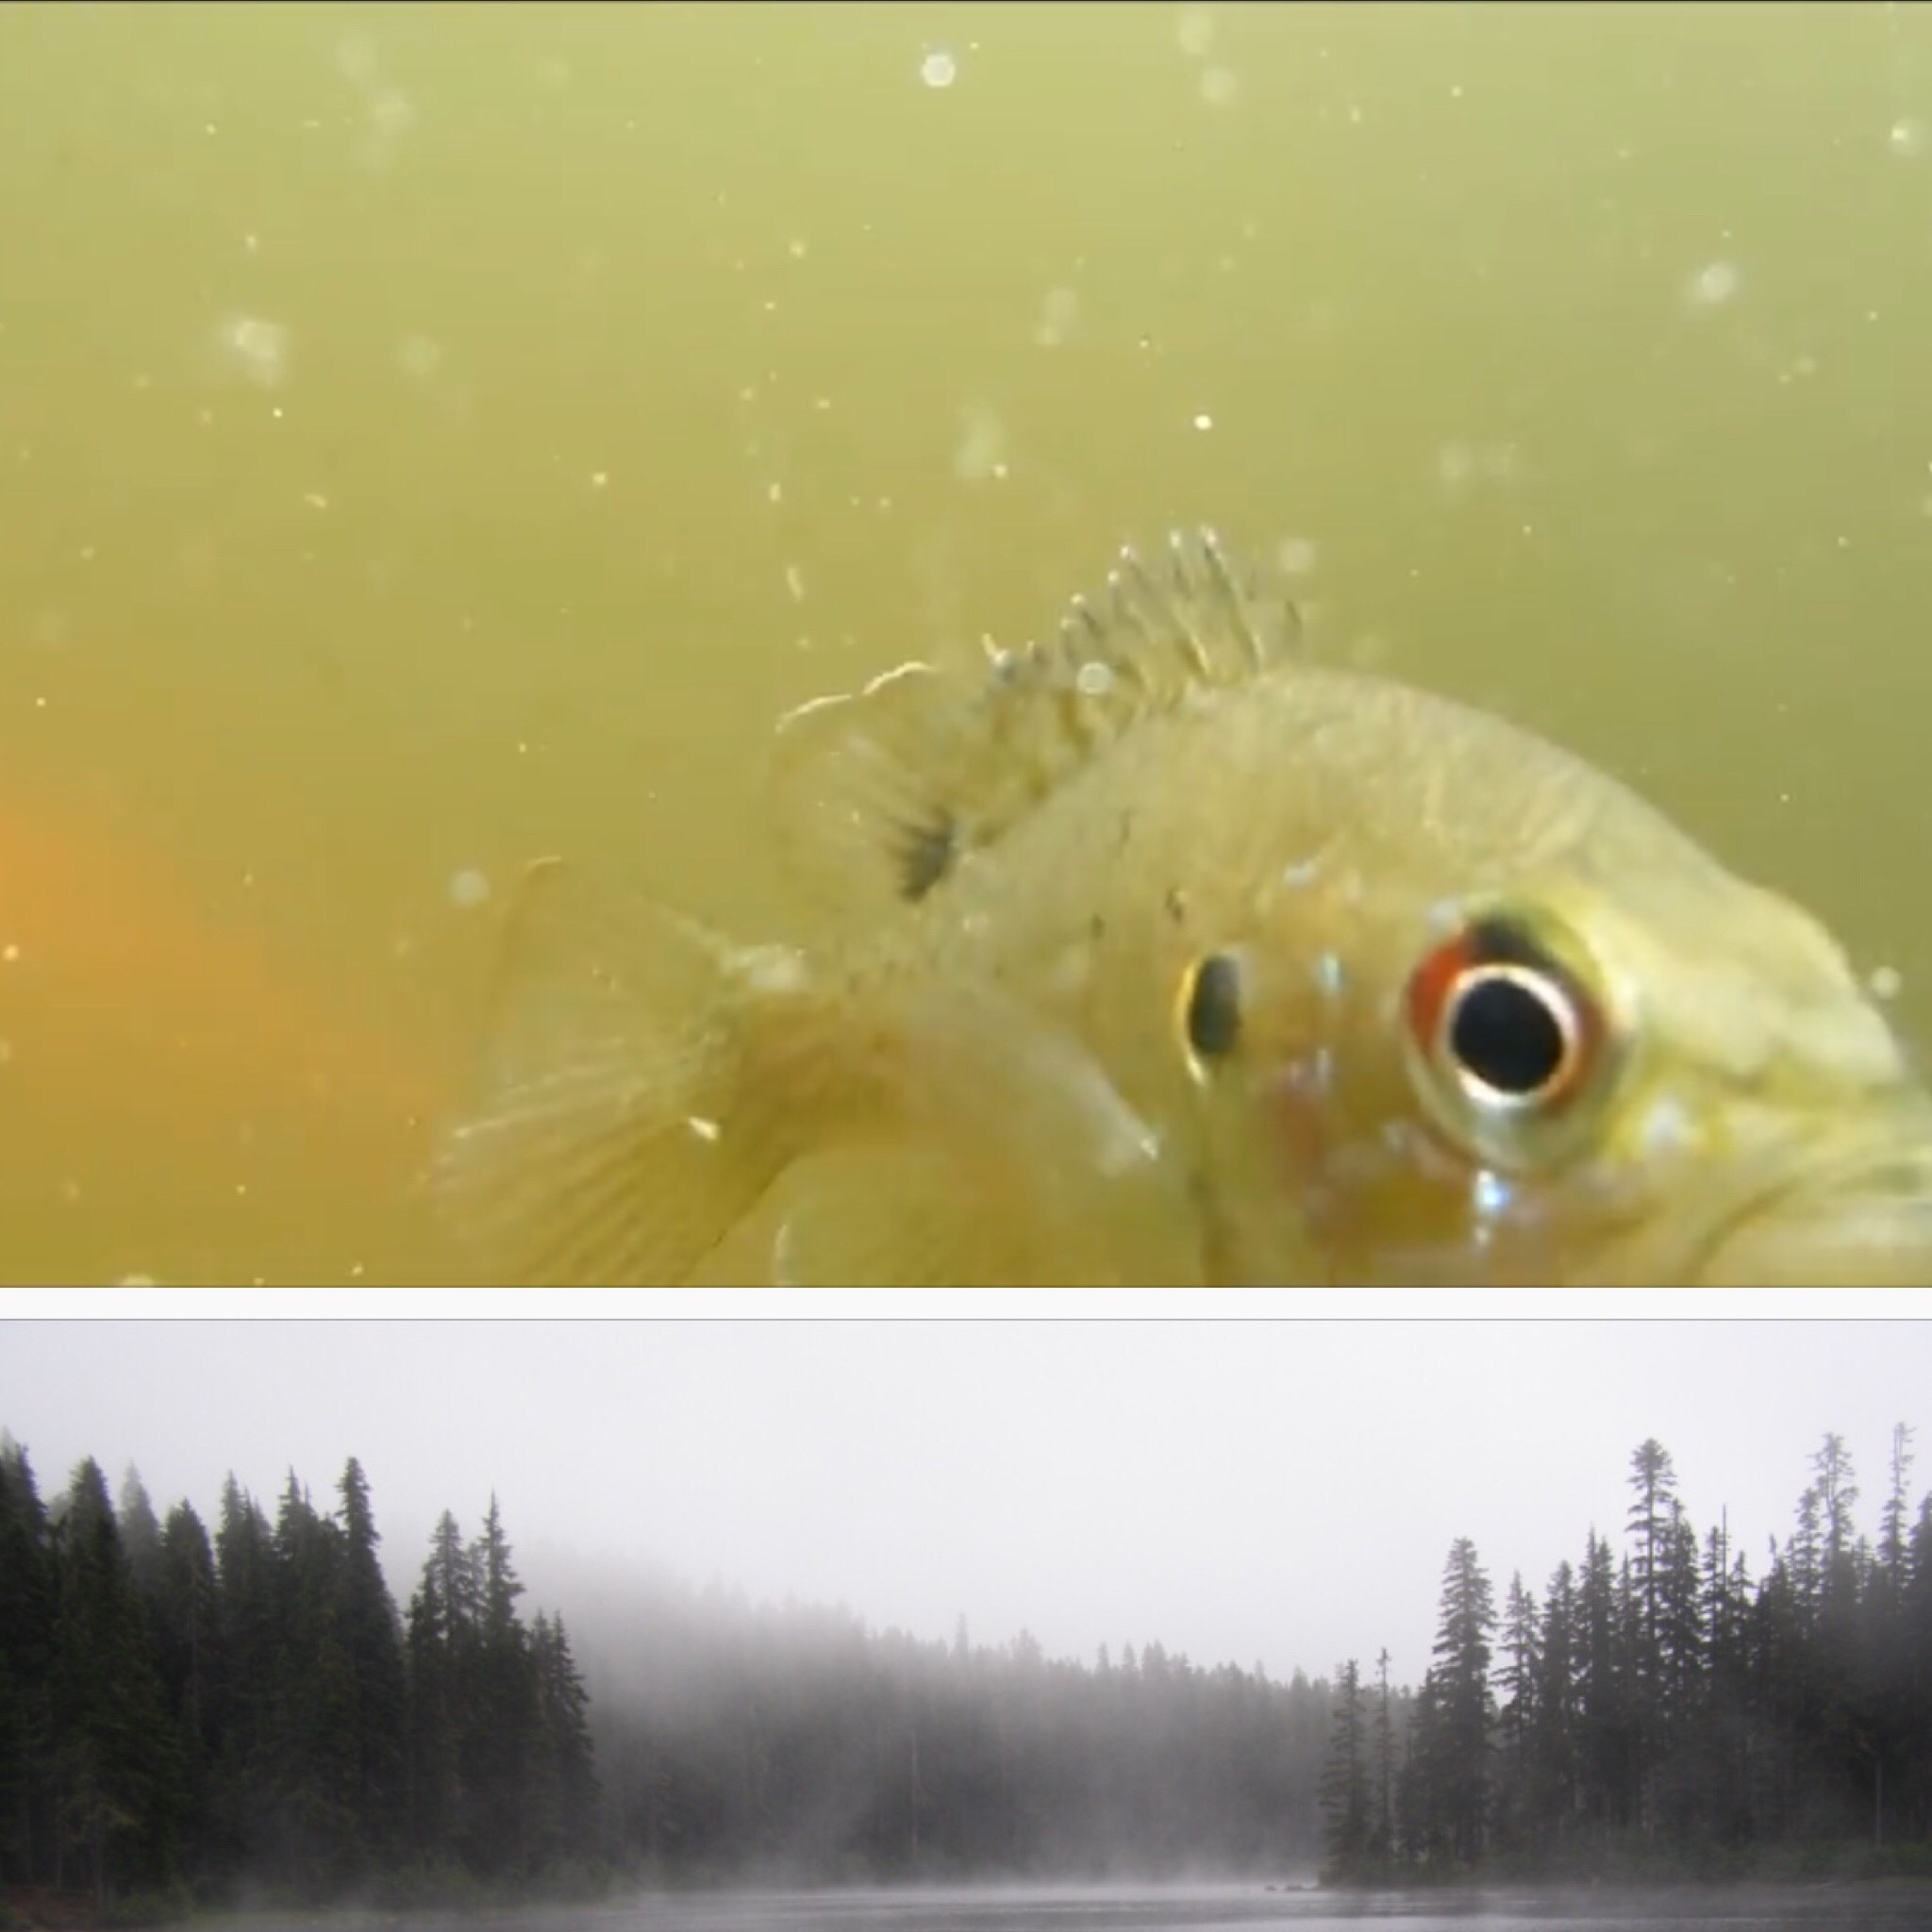 Reference Photos for the Sunfish and misty Lake that I used for Pam's artwork.